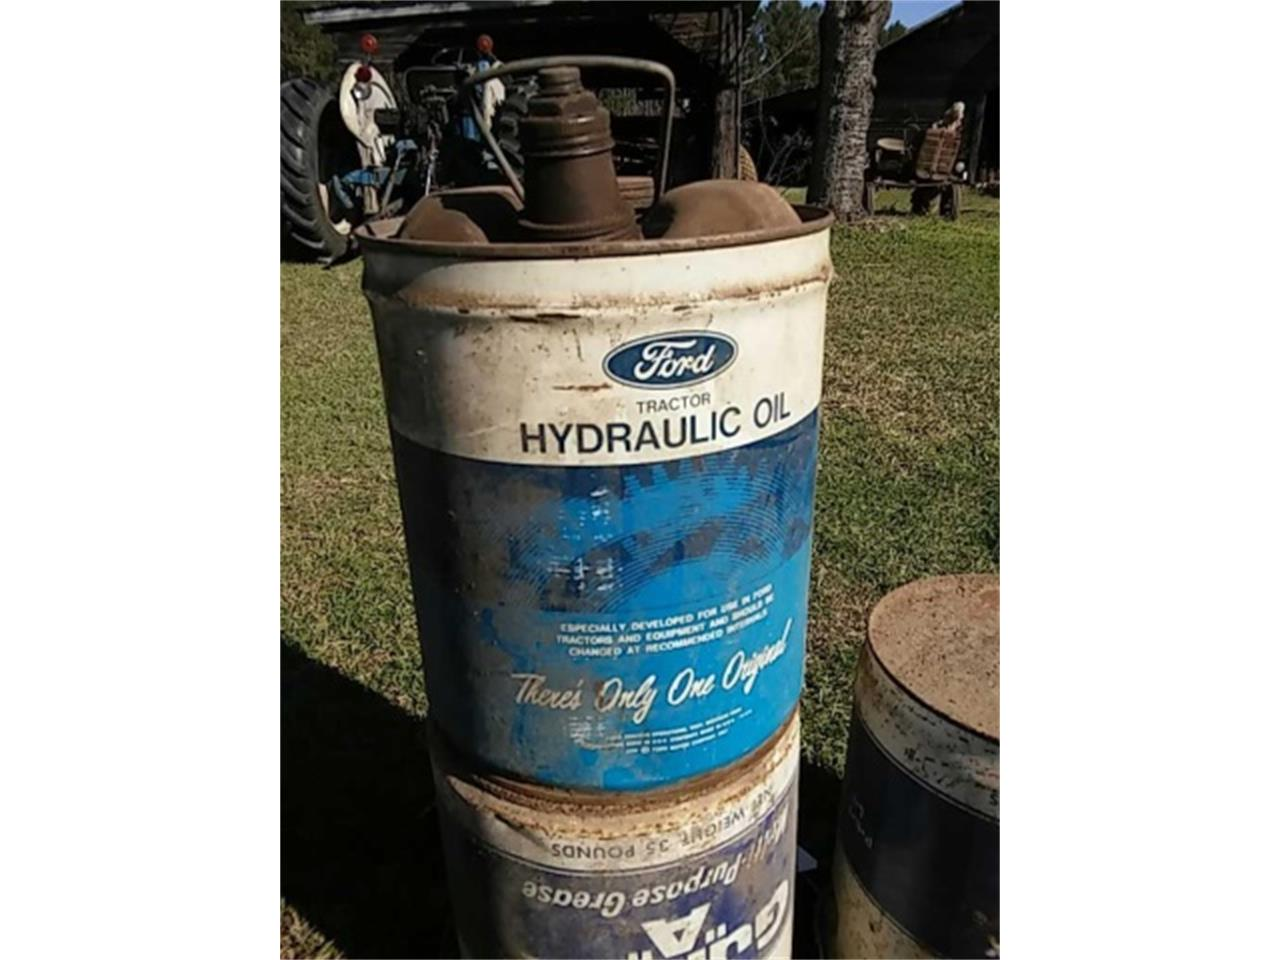 1980 Miscellaneous Vintage Ford Hydraulic Fluid 5 Gallon